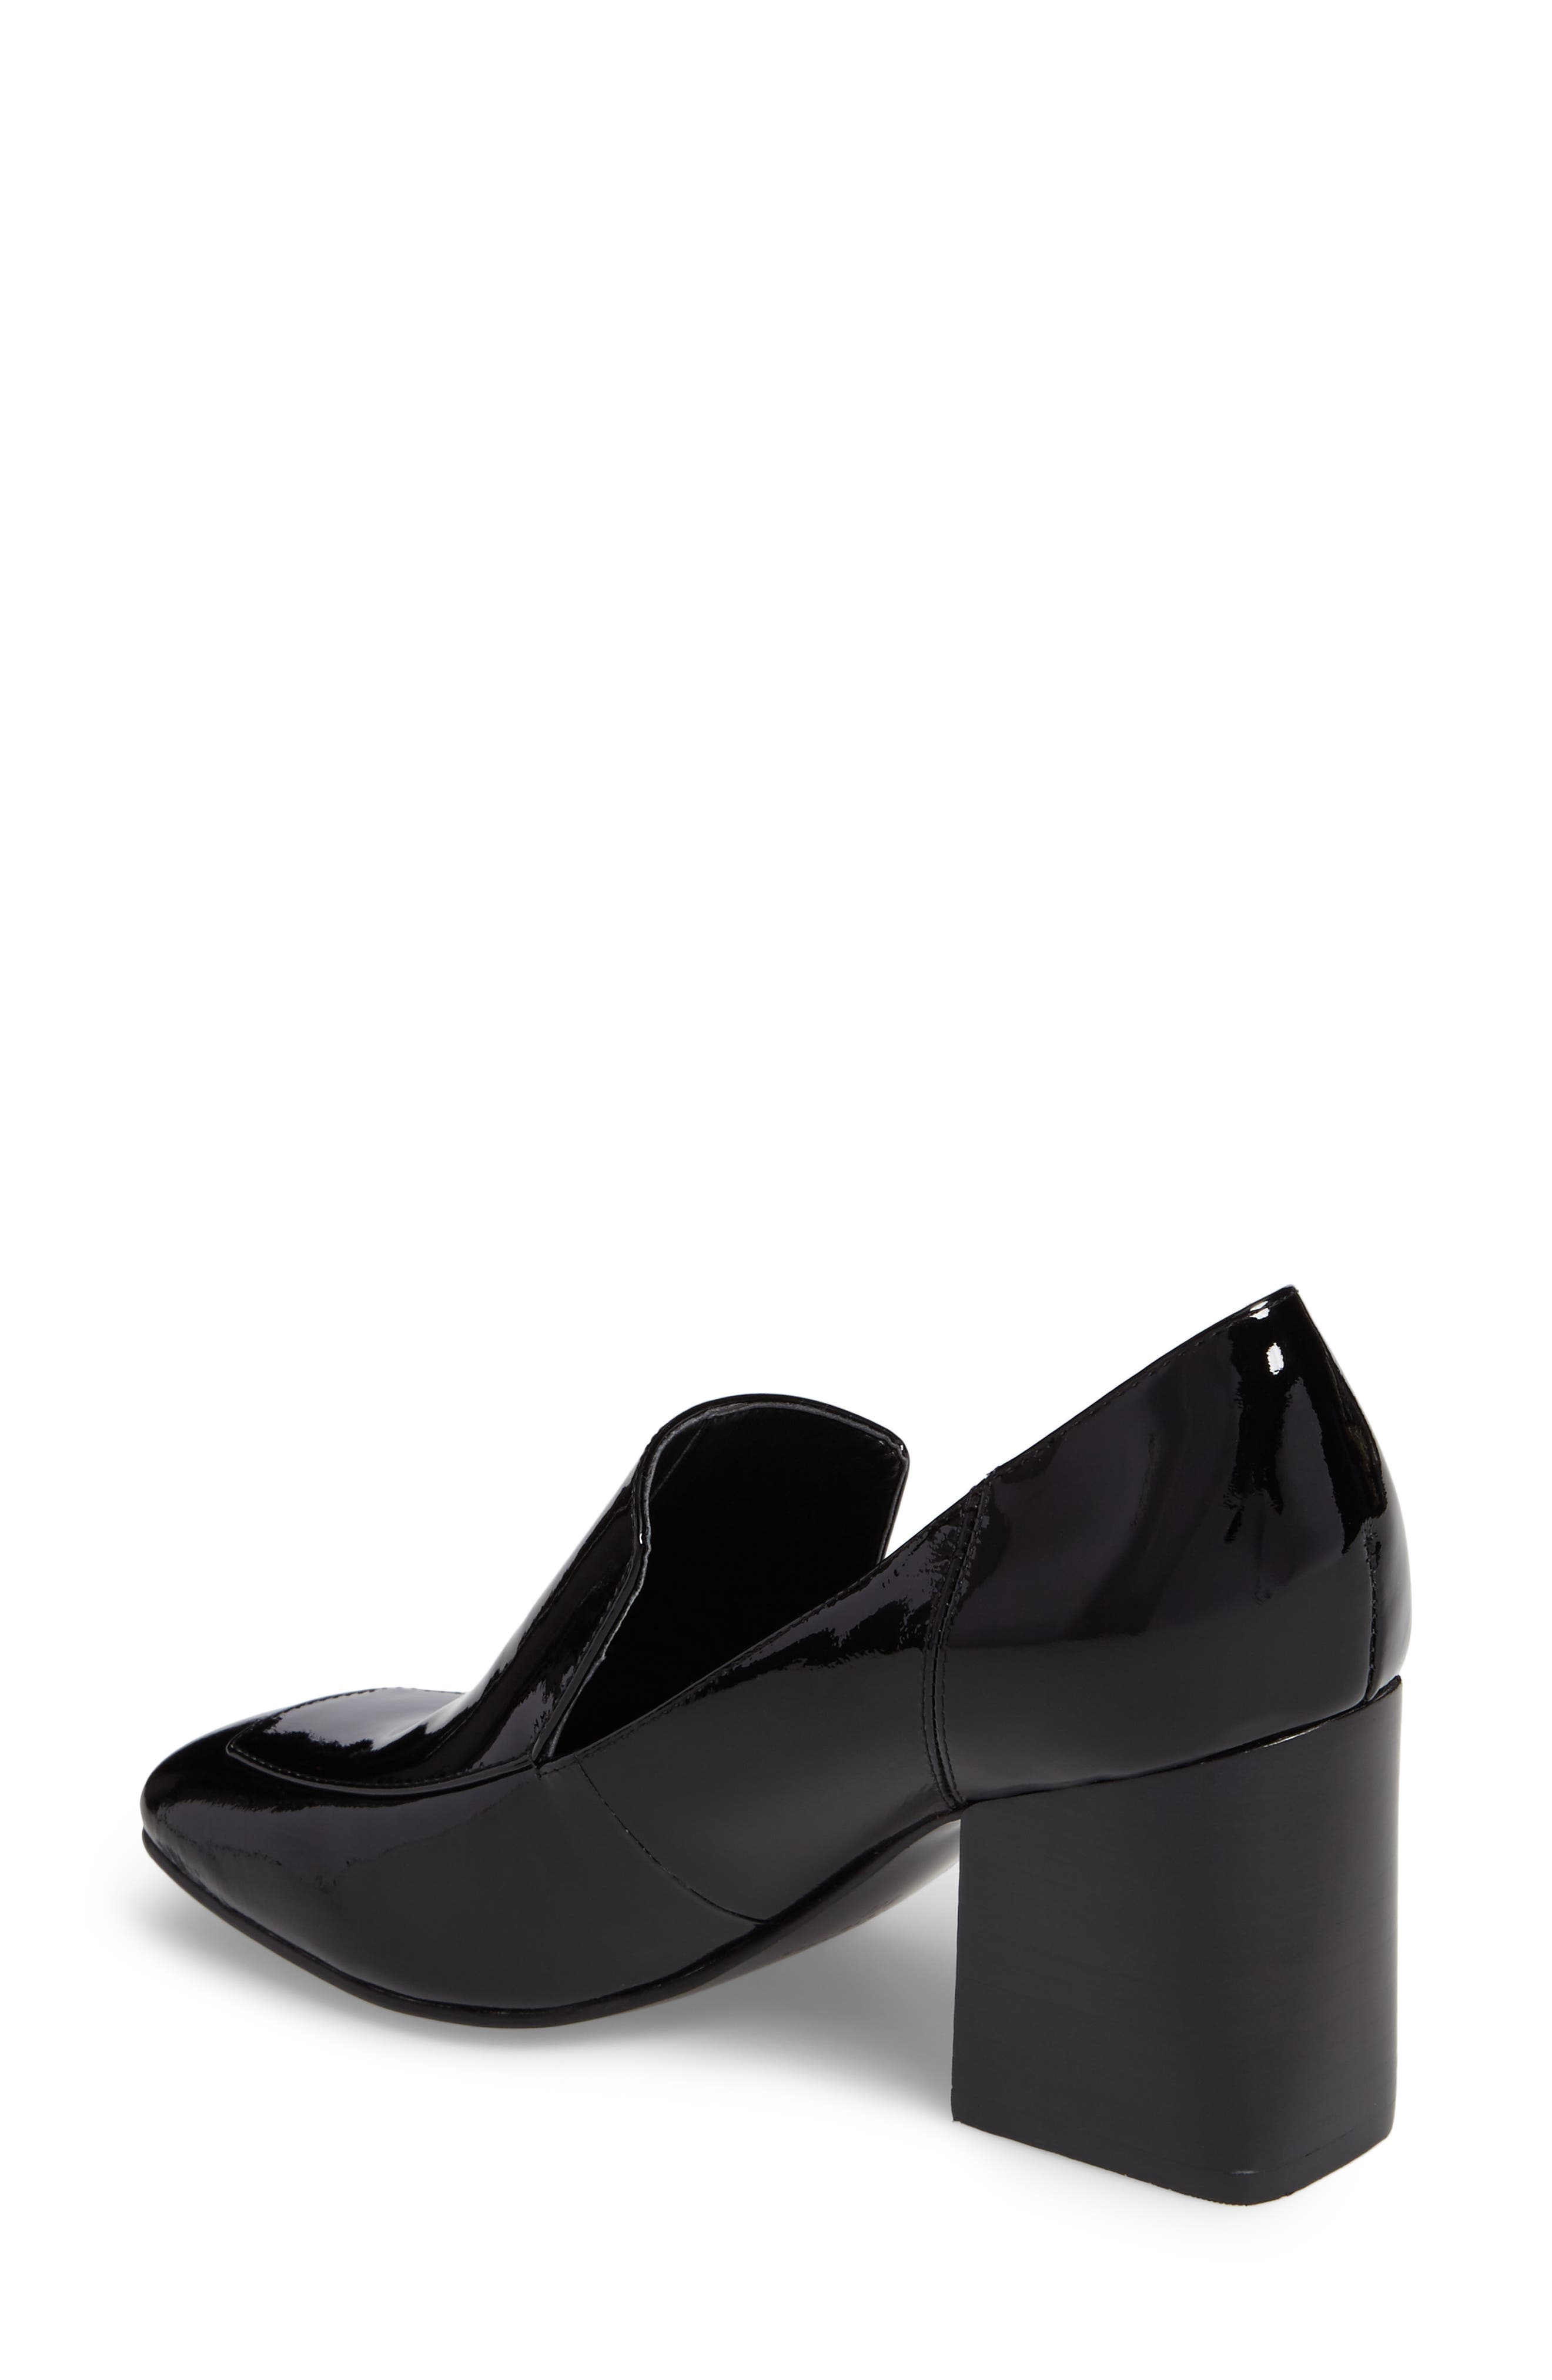 Marlo Loafer Pump,                             Alternate thumbnail 7, color,